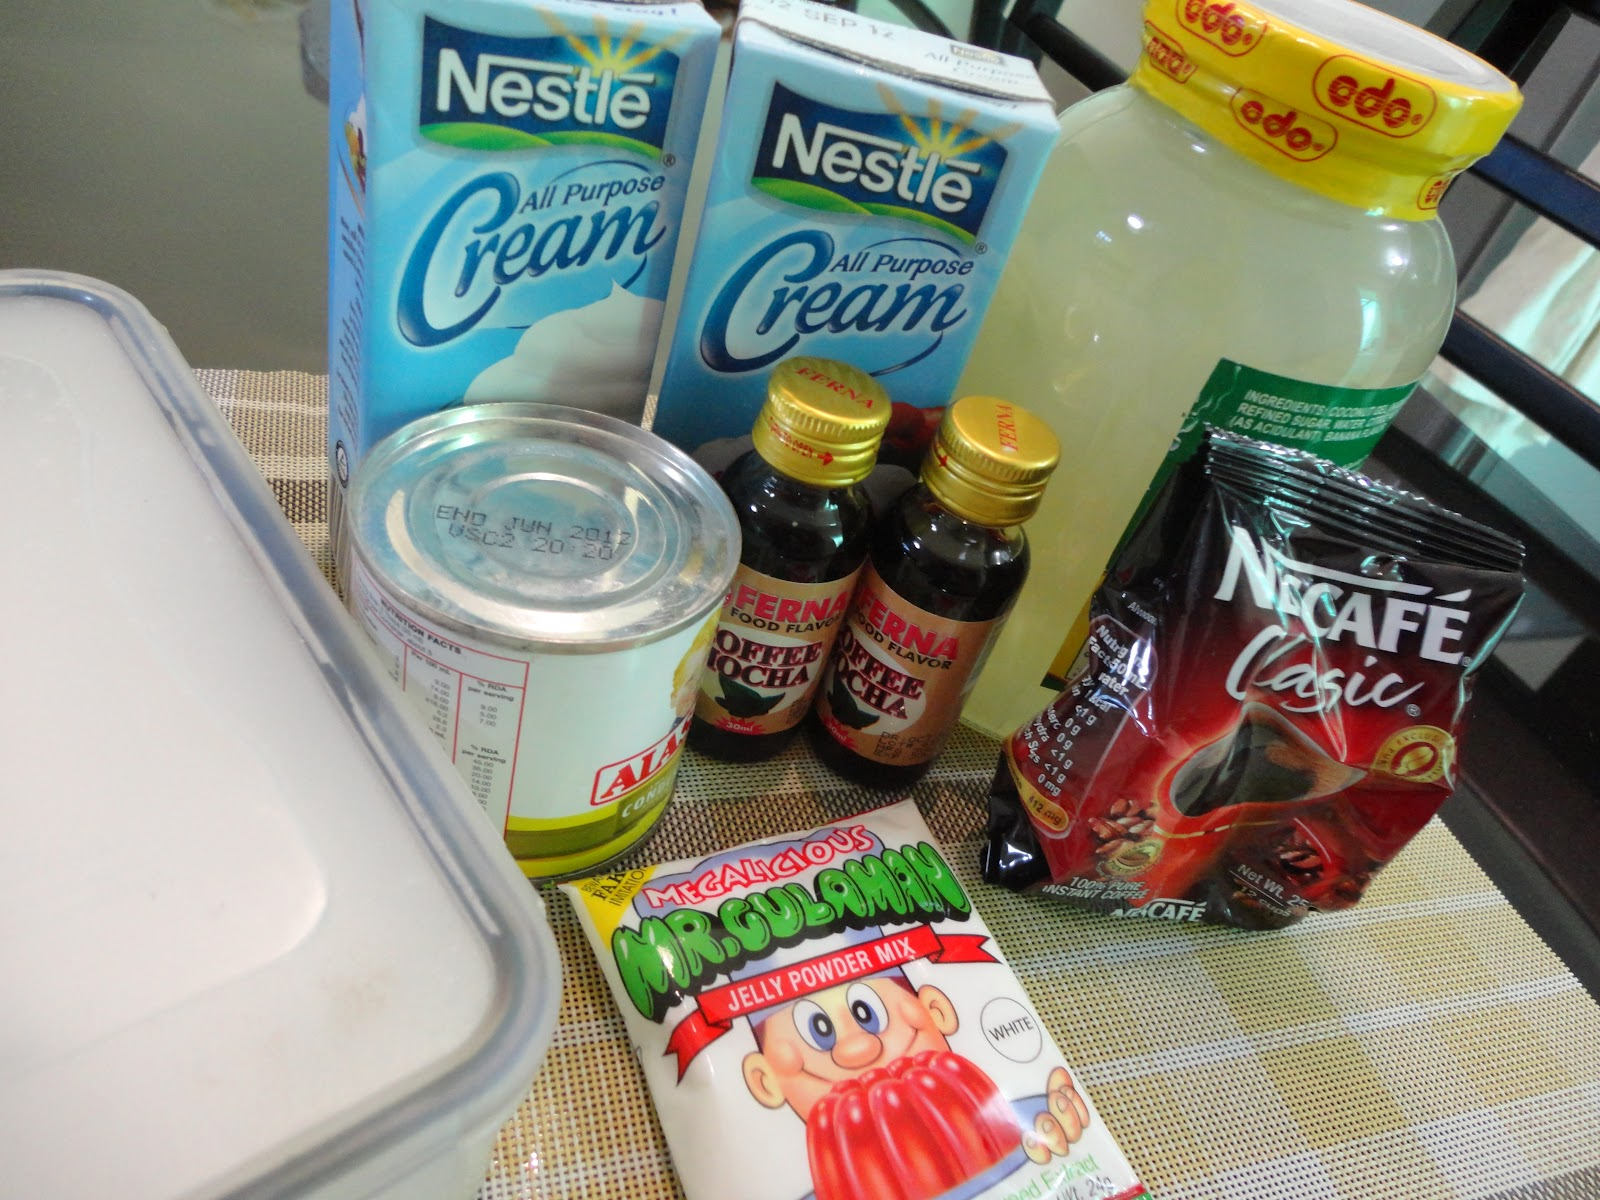 Gulaman Recipe Ingredients http://thedentistisinthekitchen.blogspot.com/2012/03/sls-coffee-jelly.html